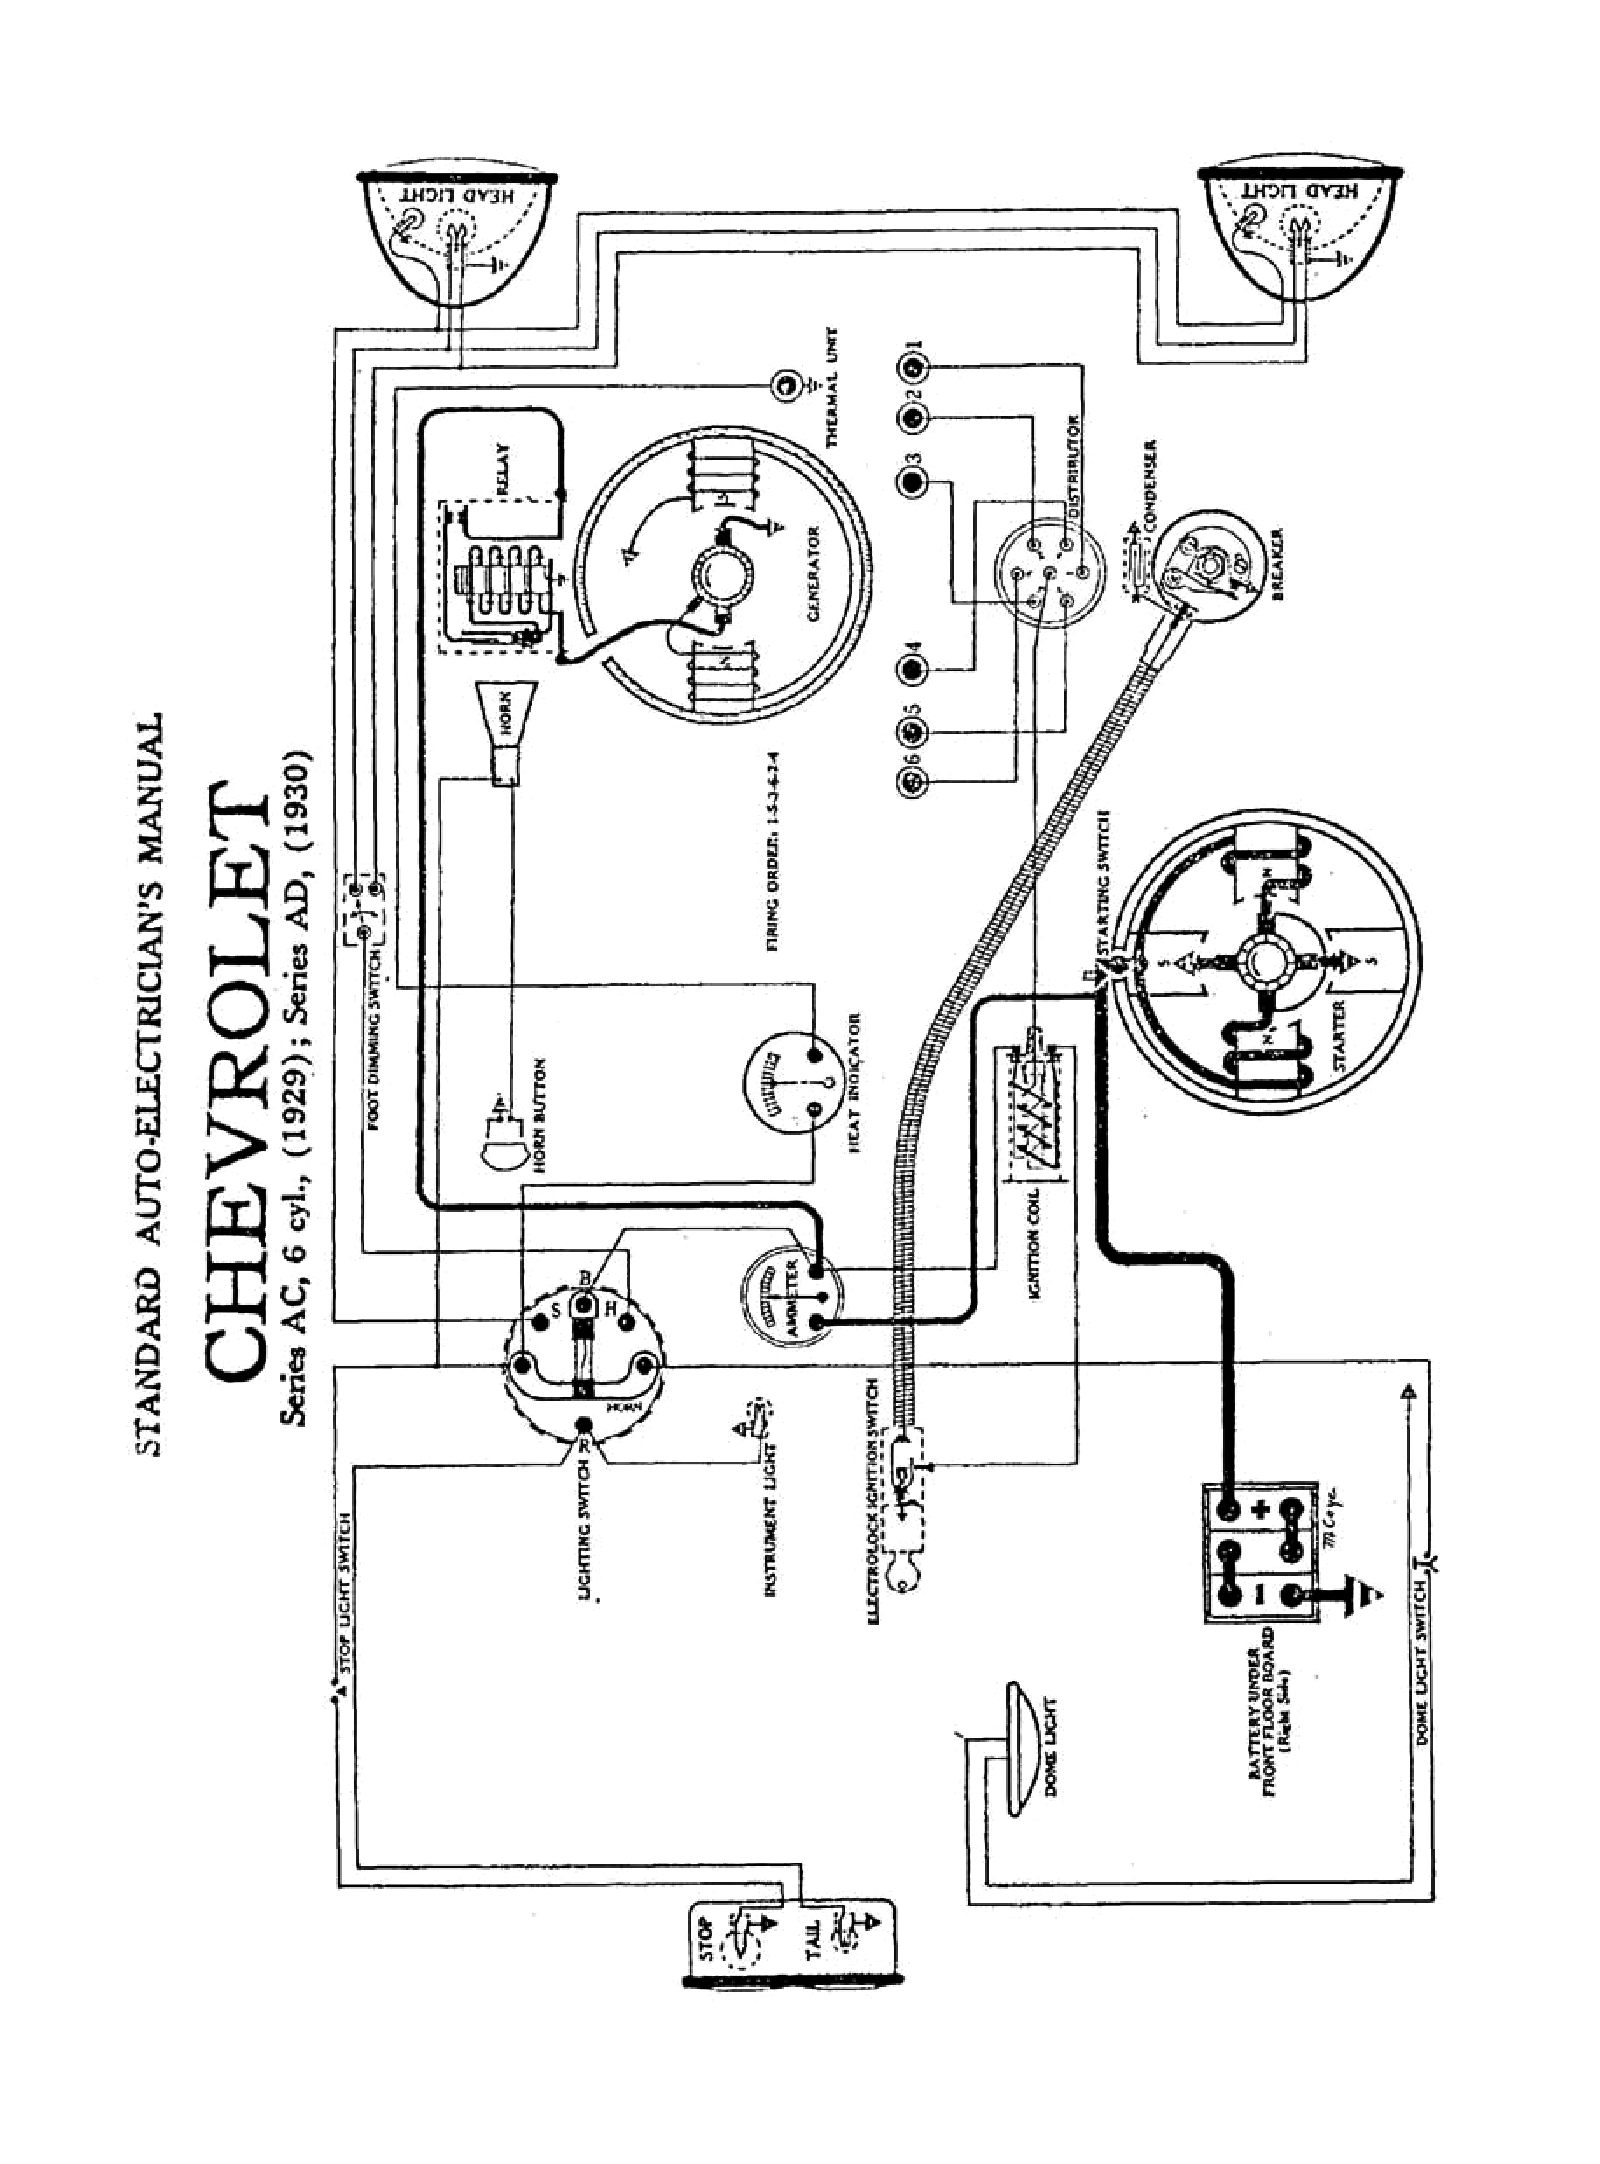 2930wiring chevy wiring diagrams 1929 Pontiac Sedan Model at gsmportal.co